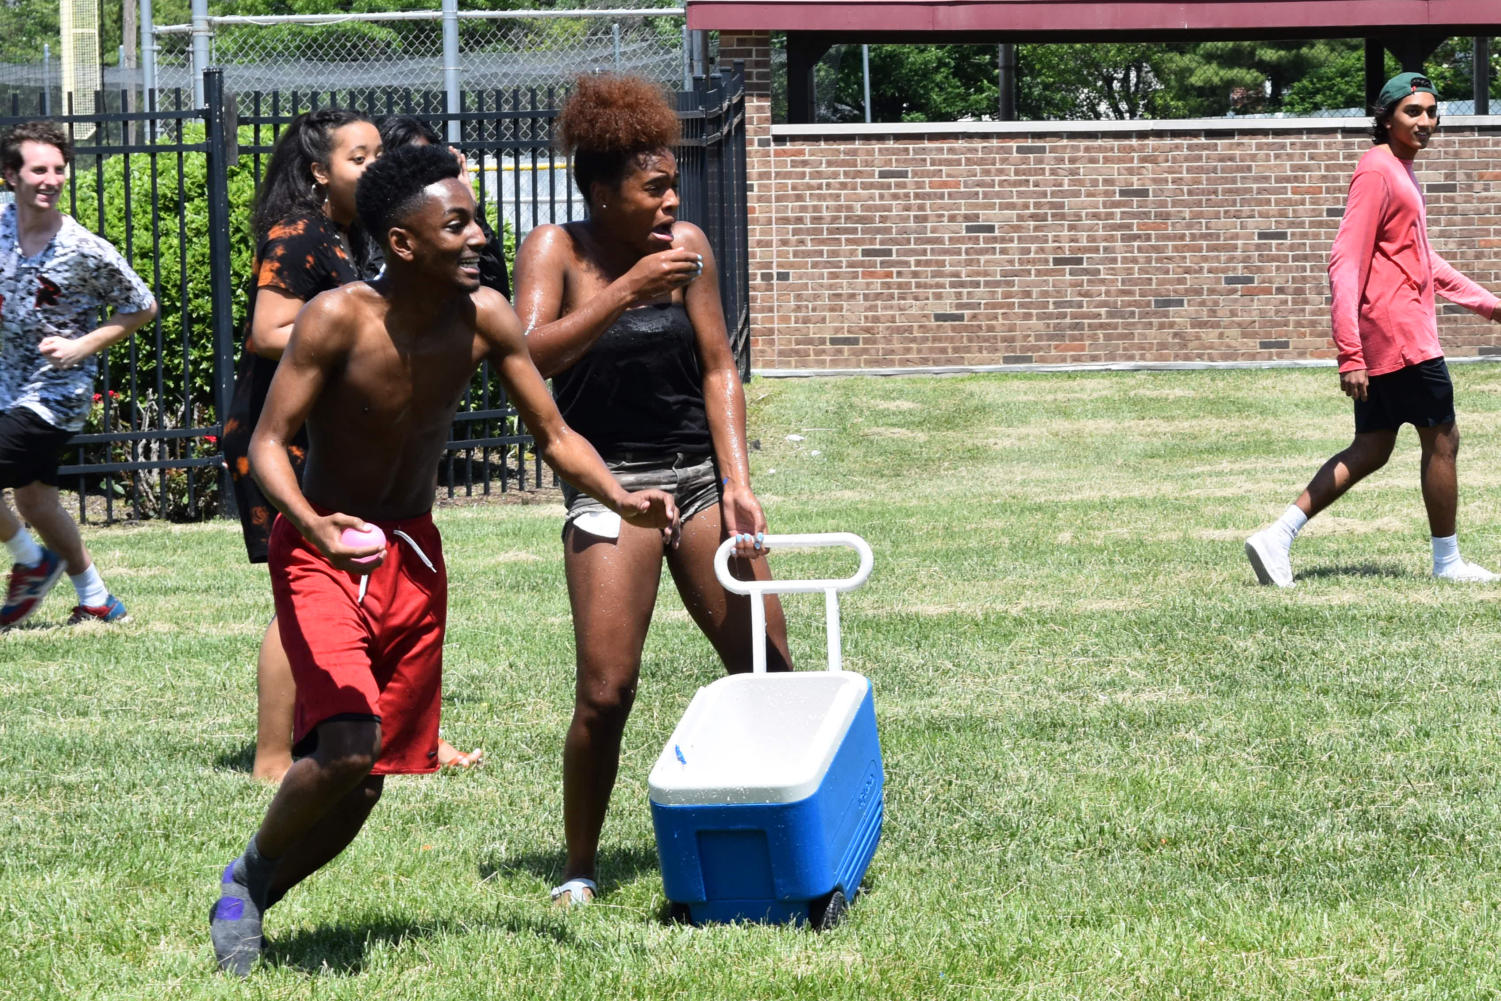 Mouth dropping in shock, junior Harmauhny Faulkner clutches onto a cooler full of water balloons as she is pelted by her classmates. The Junior Class began the tradition of a water balloon fight on the last day of school as a way to kick off their last summer before senior year.